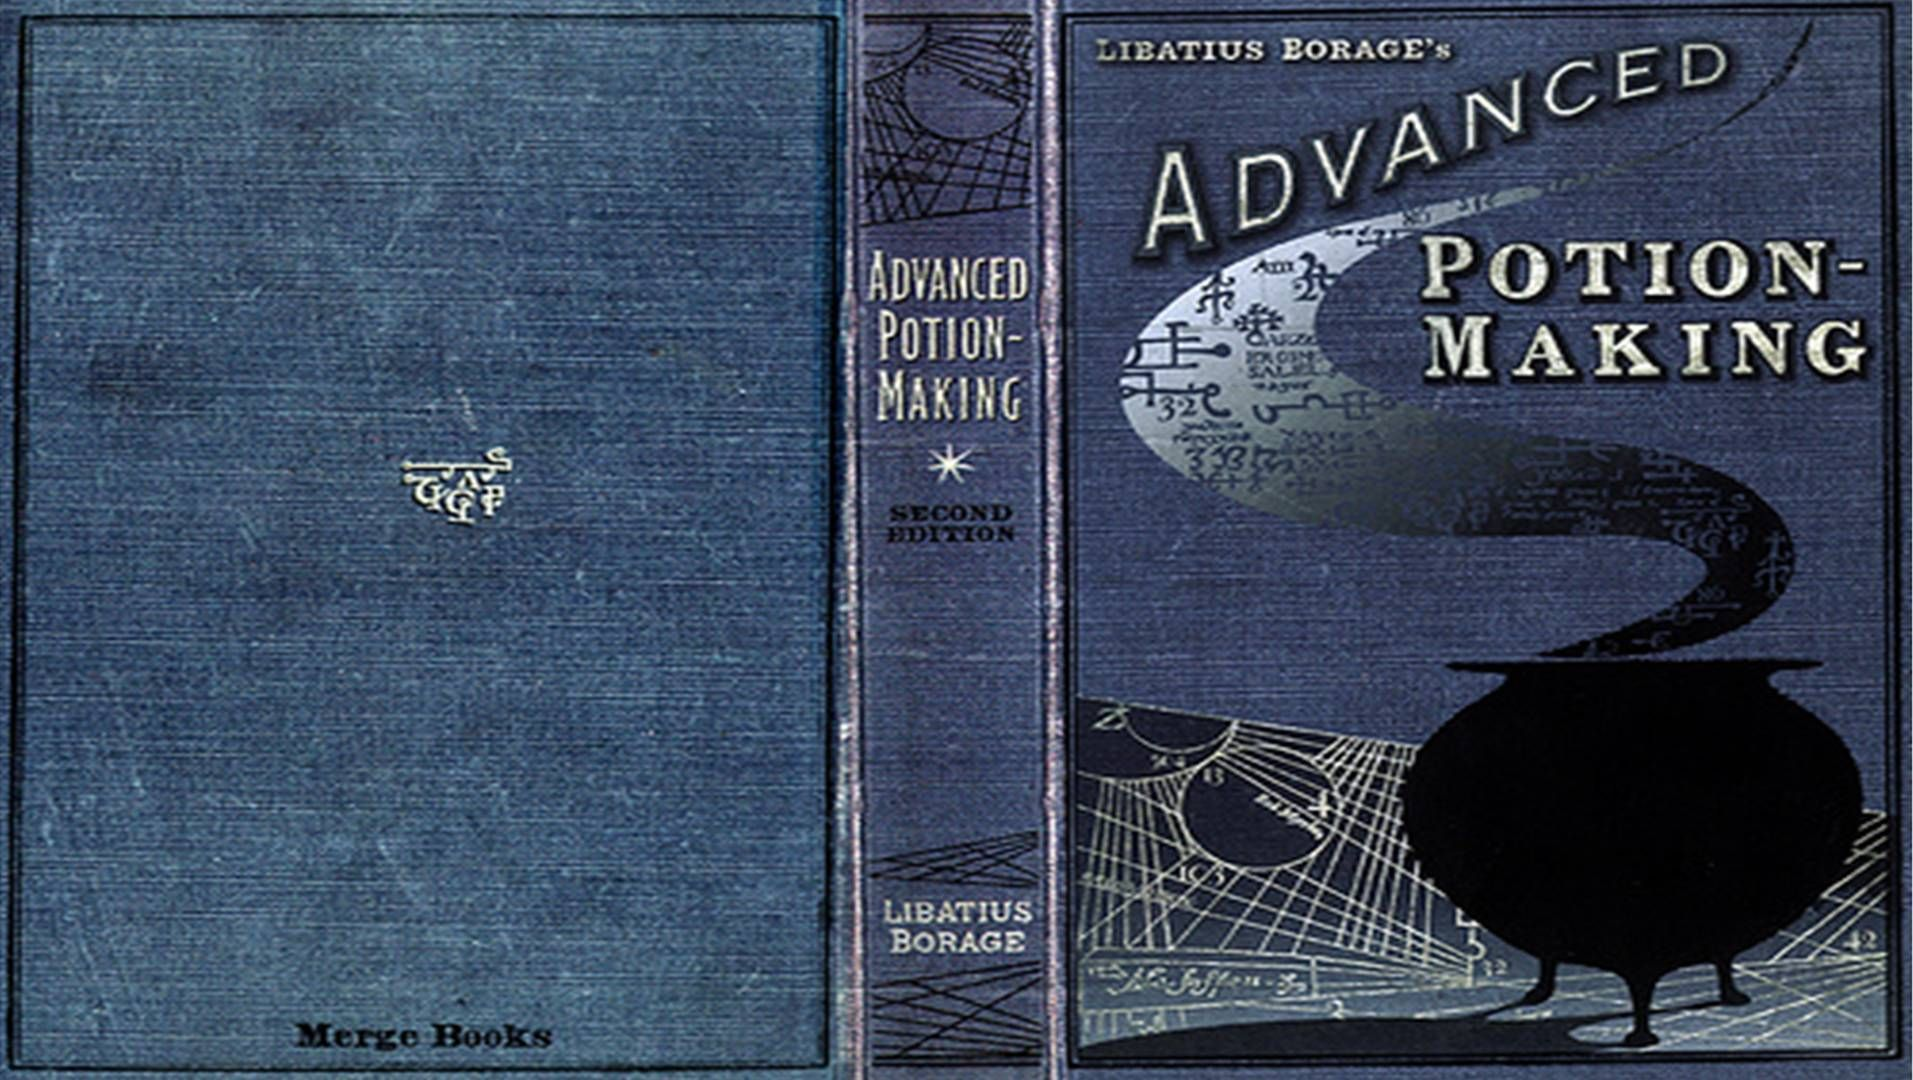 This is an image of Universal Printable Harry Potter Book Covers